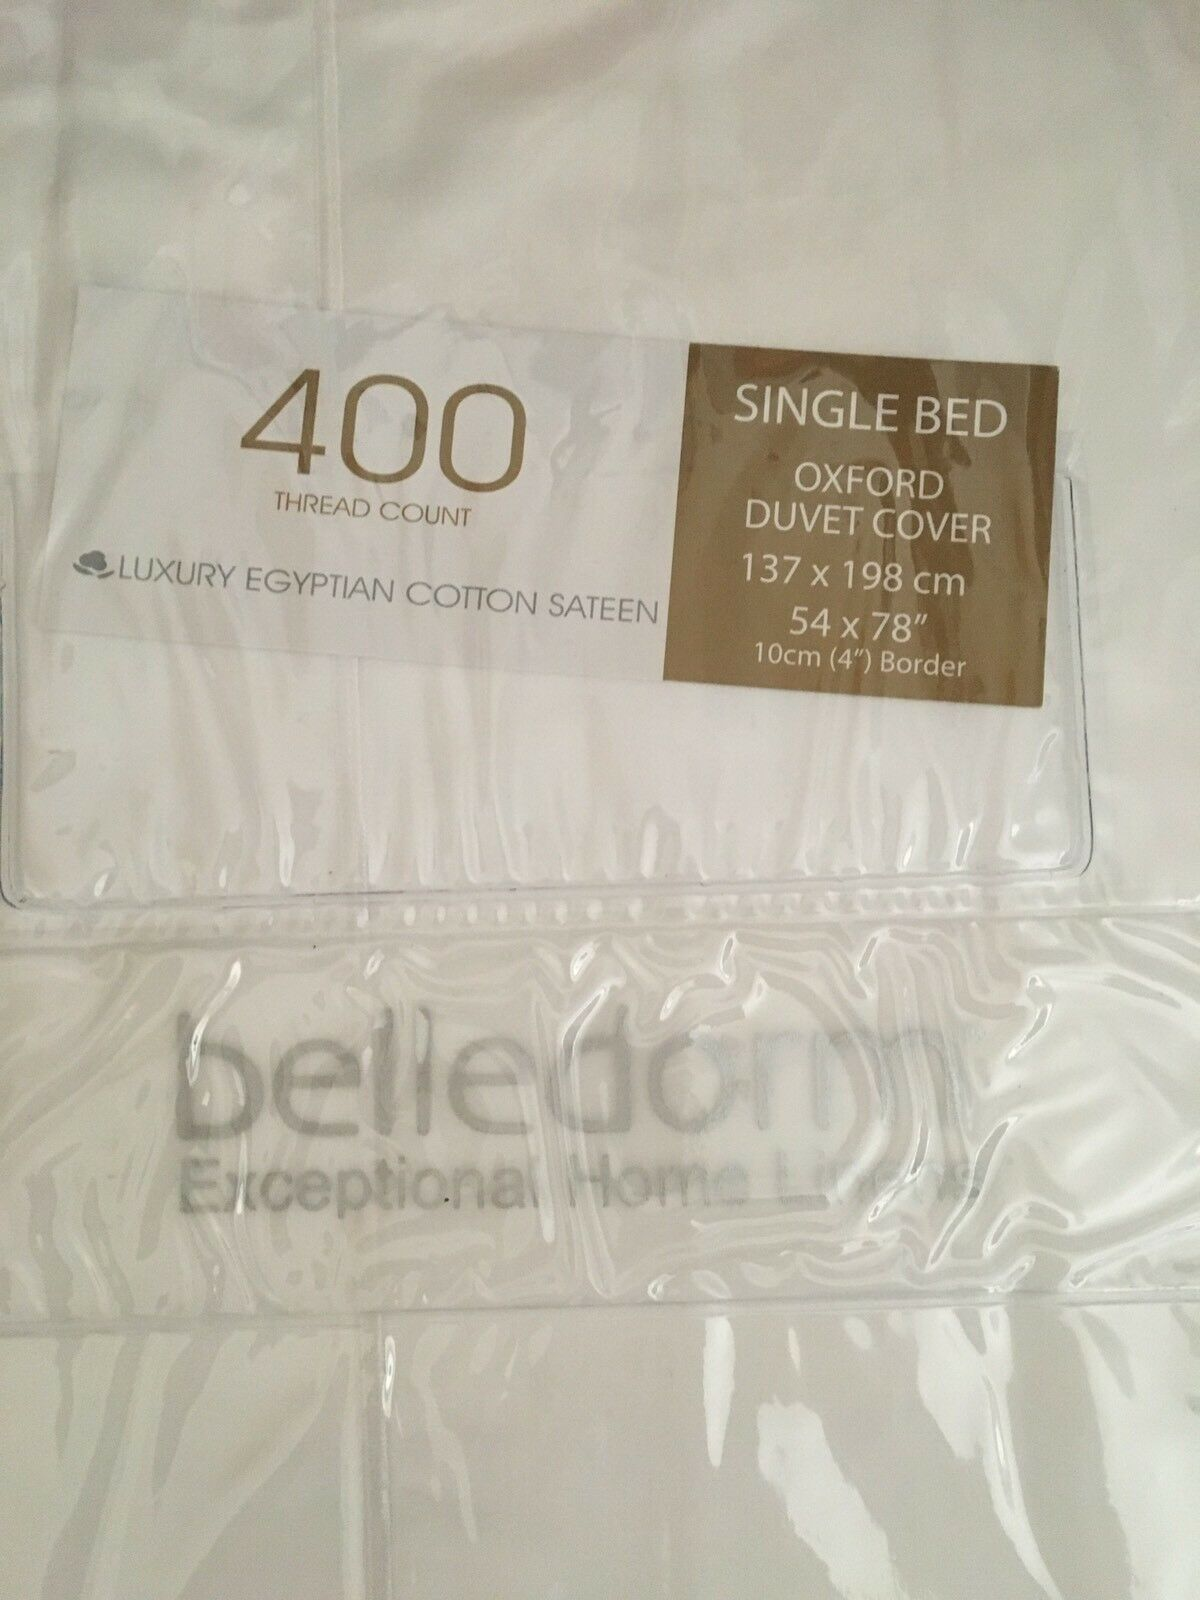 A BELLEDORM LUXURY COTTON SATEEN SINGLE BED OXFORD DUVET COVER BNIP